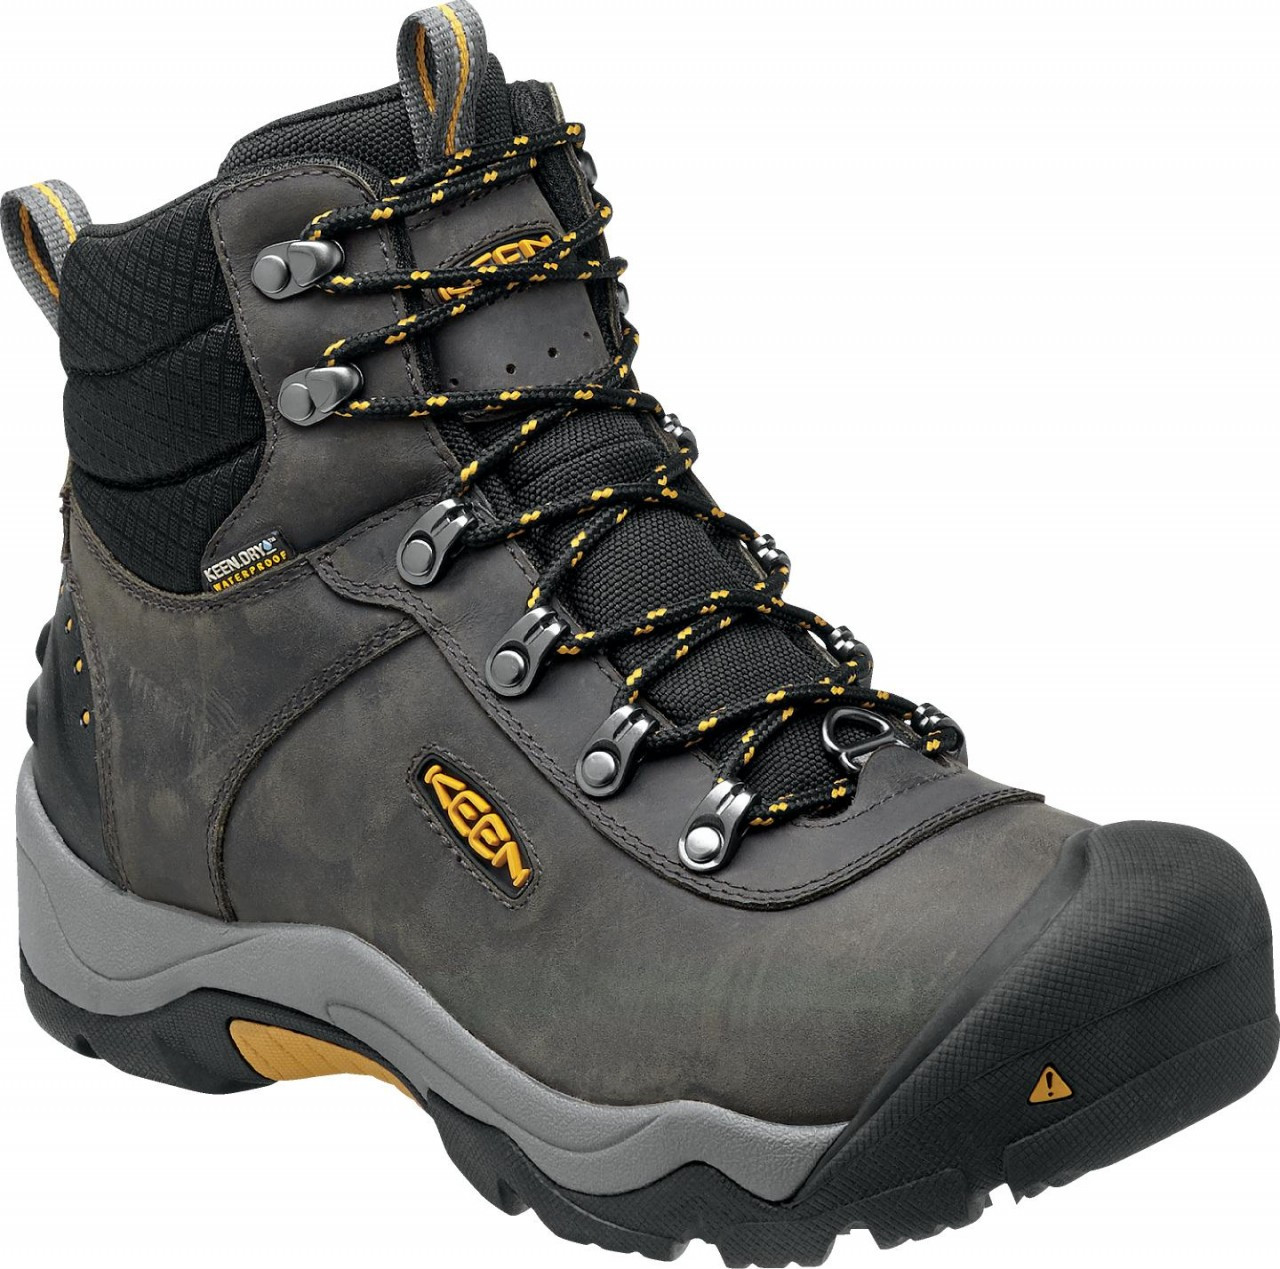 34d40ec8b2f Men's Keen Revel III Winter Hiking Boot